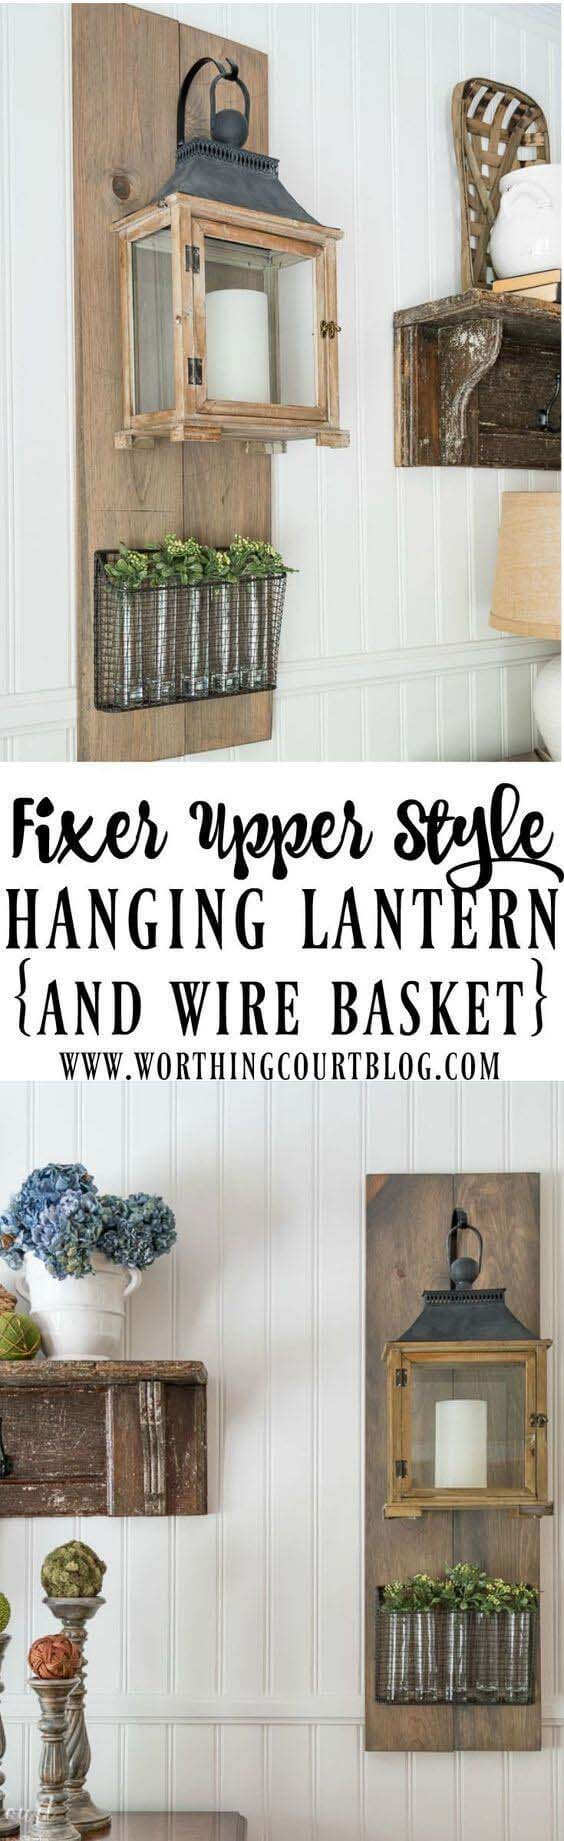 Wall-Hanging Lantern and Plant Display #farmhouse #furniture #decorhomeideas